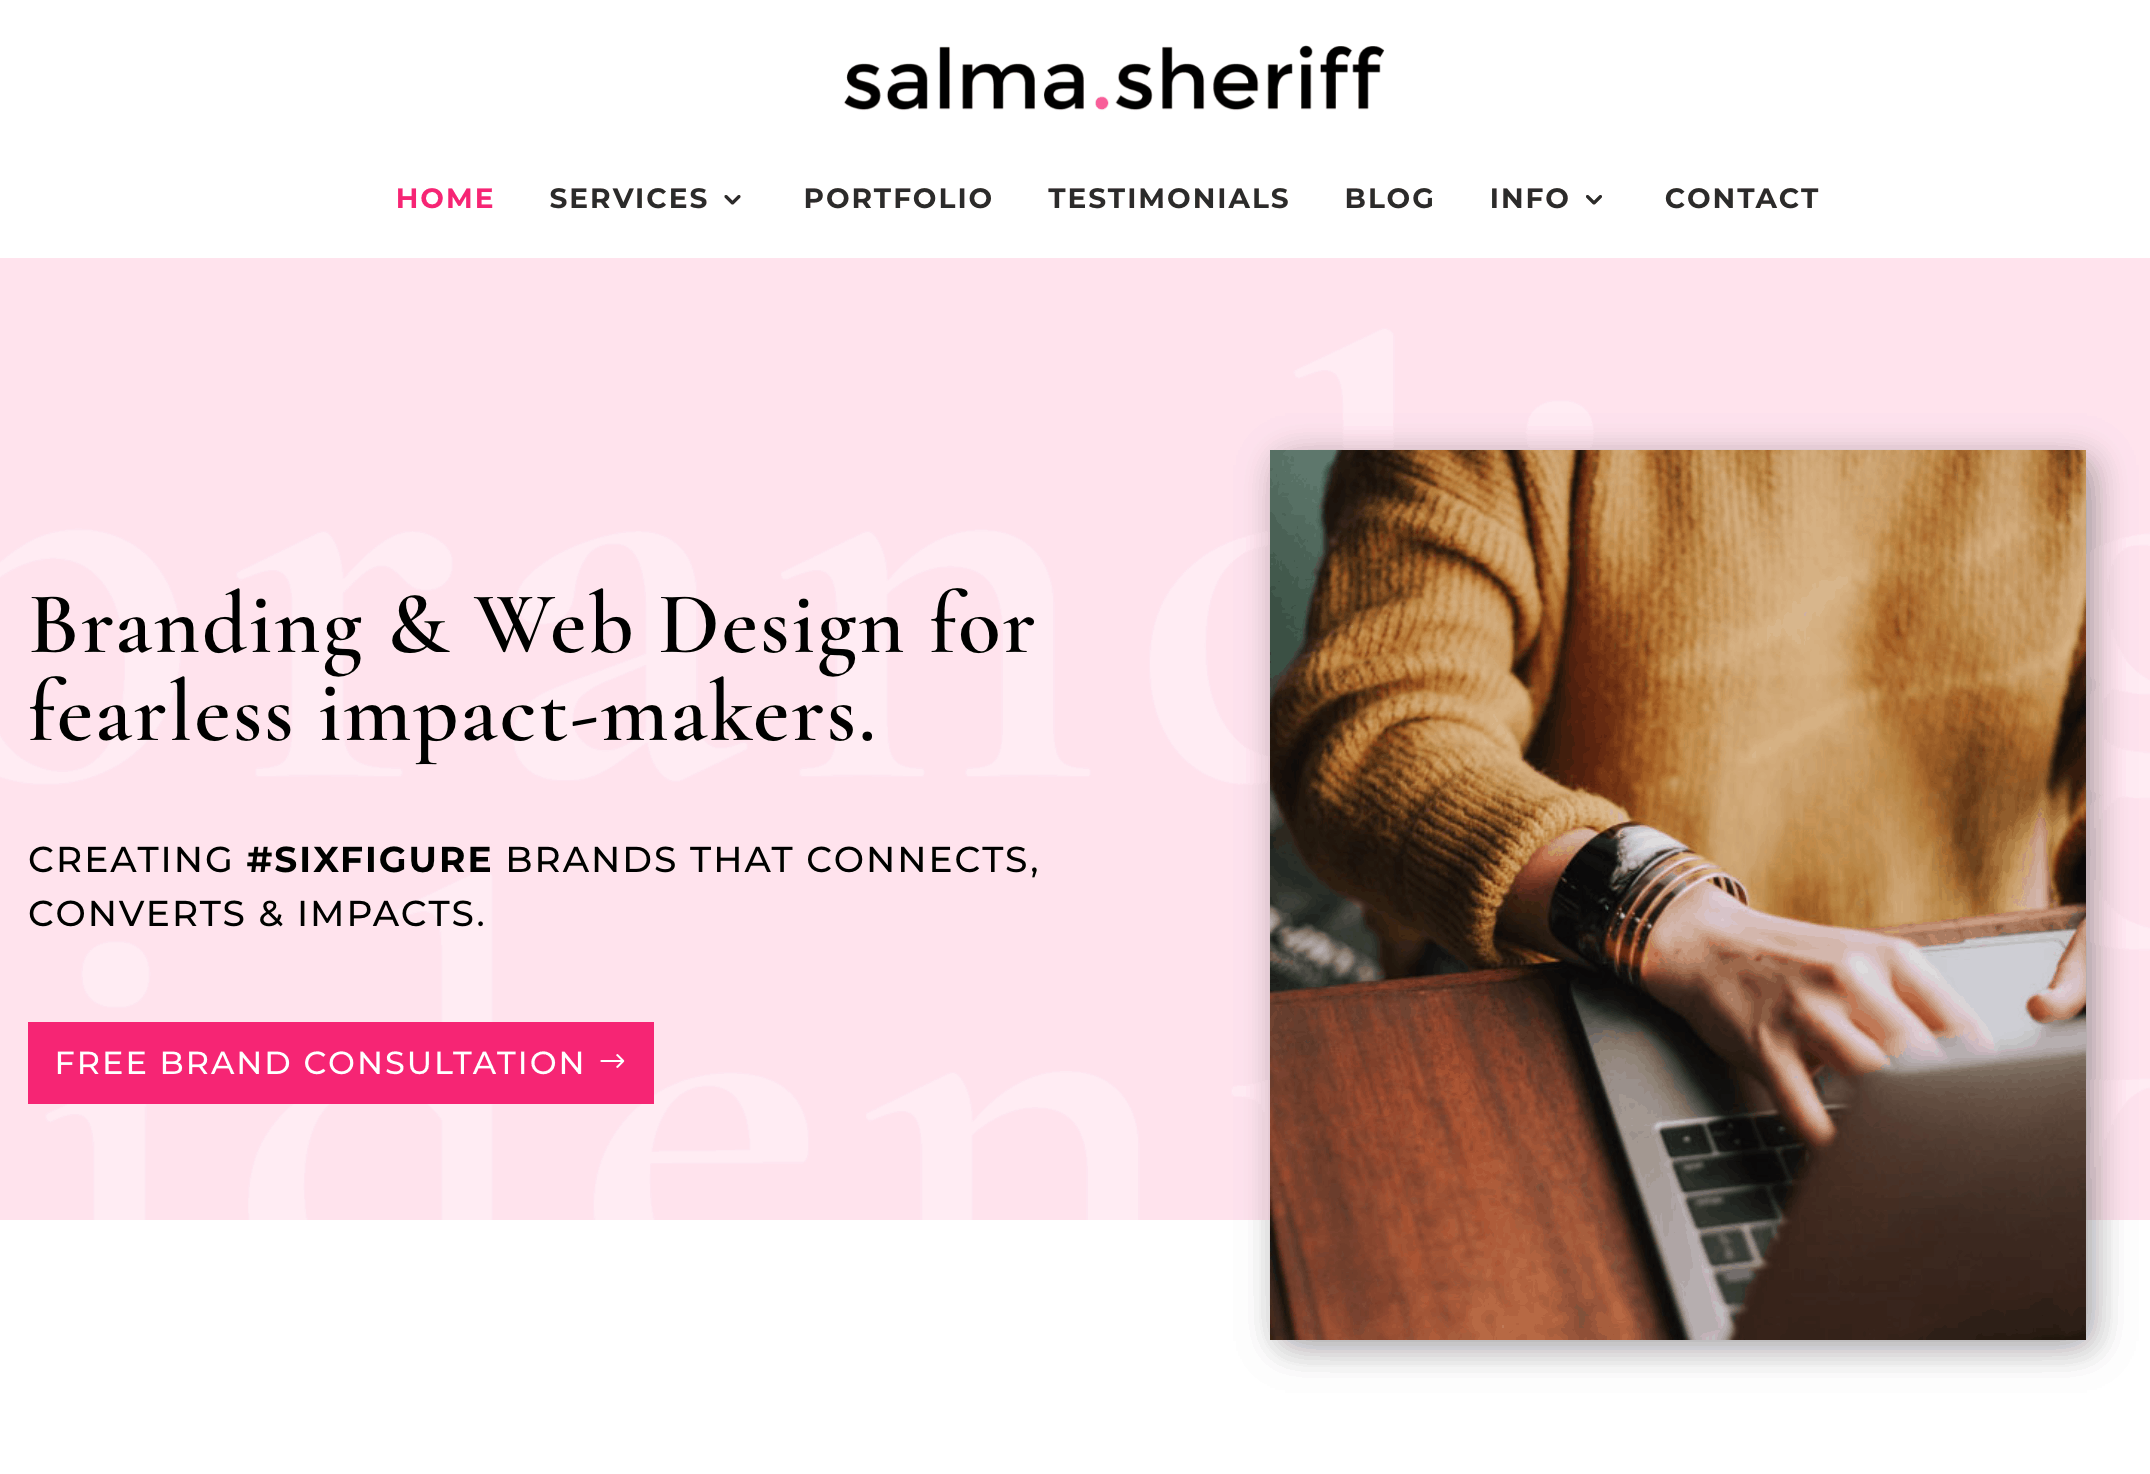 Salma uses her blog to gain clients